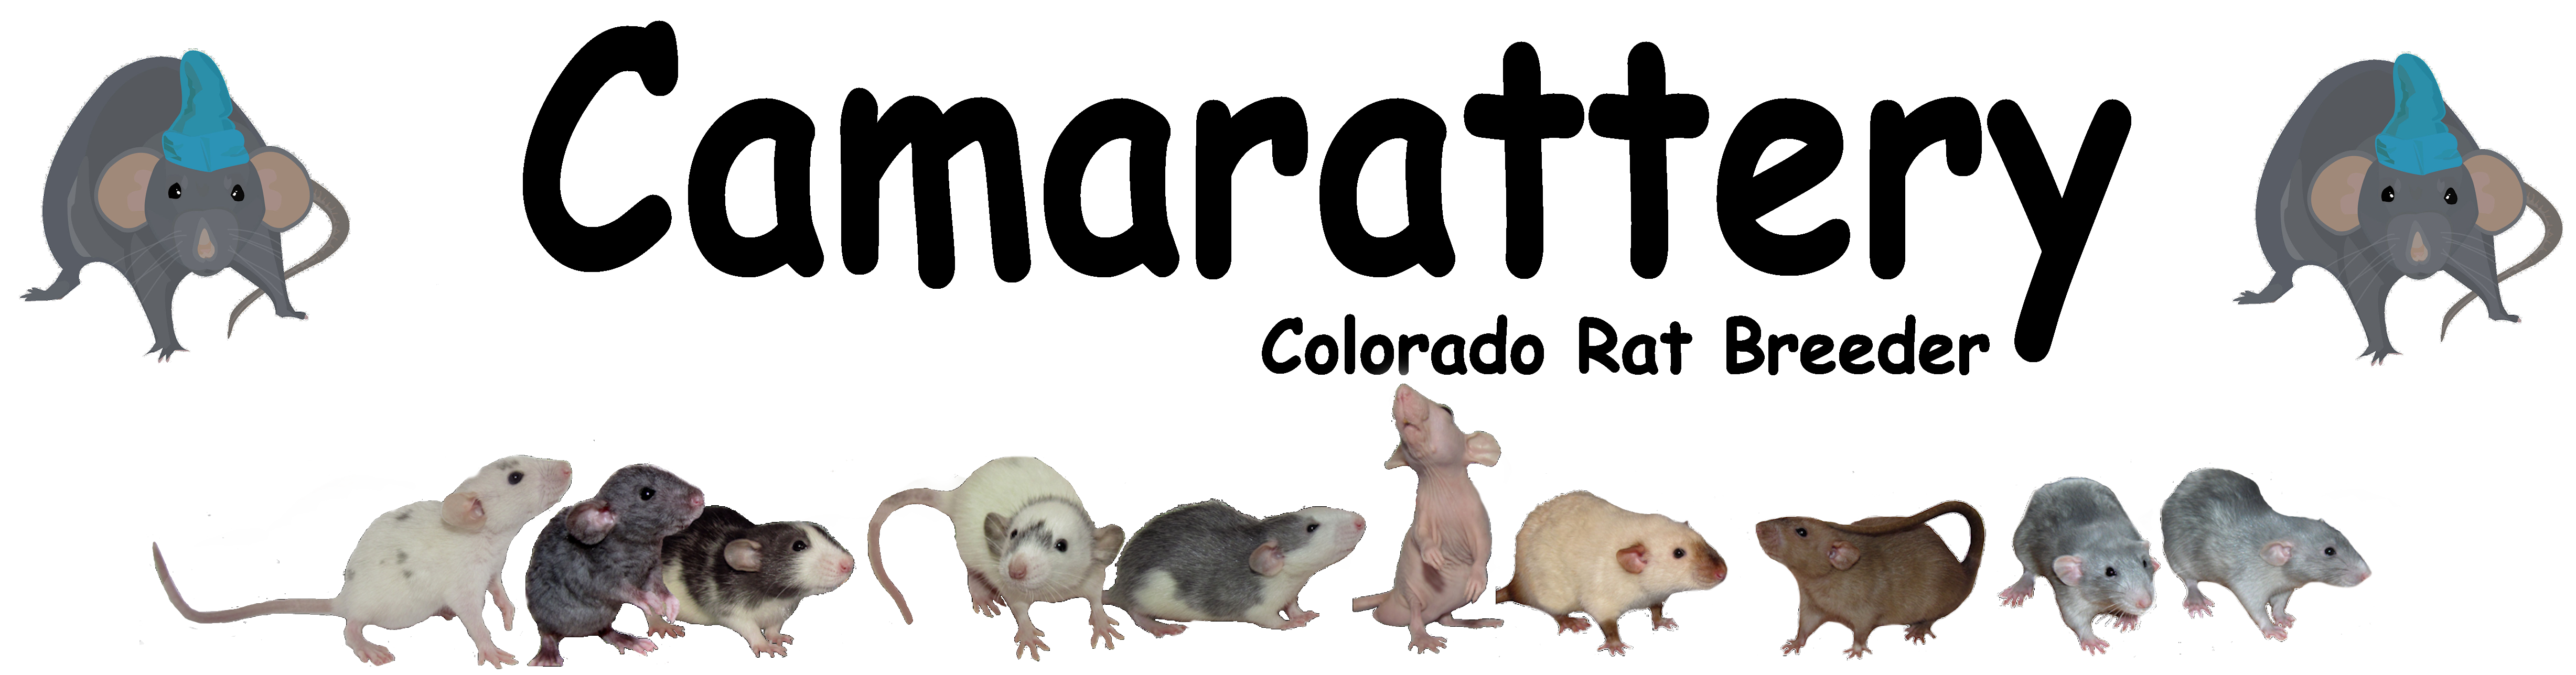 Camarattery - Colorado Rat Breeder